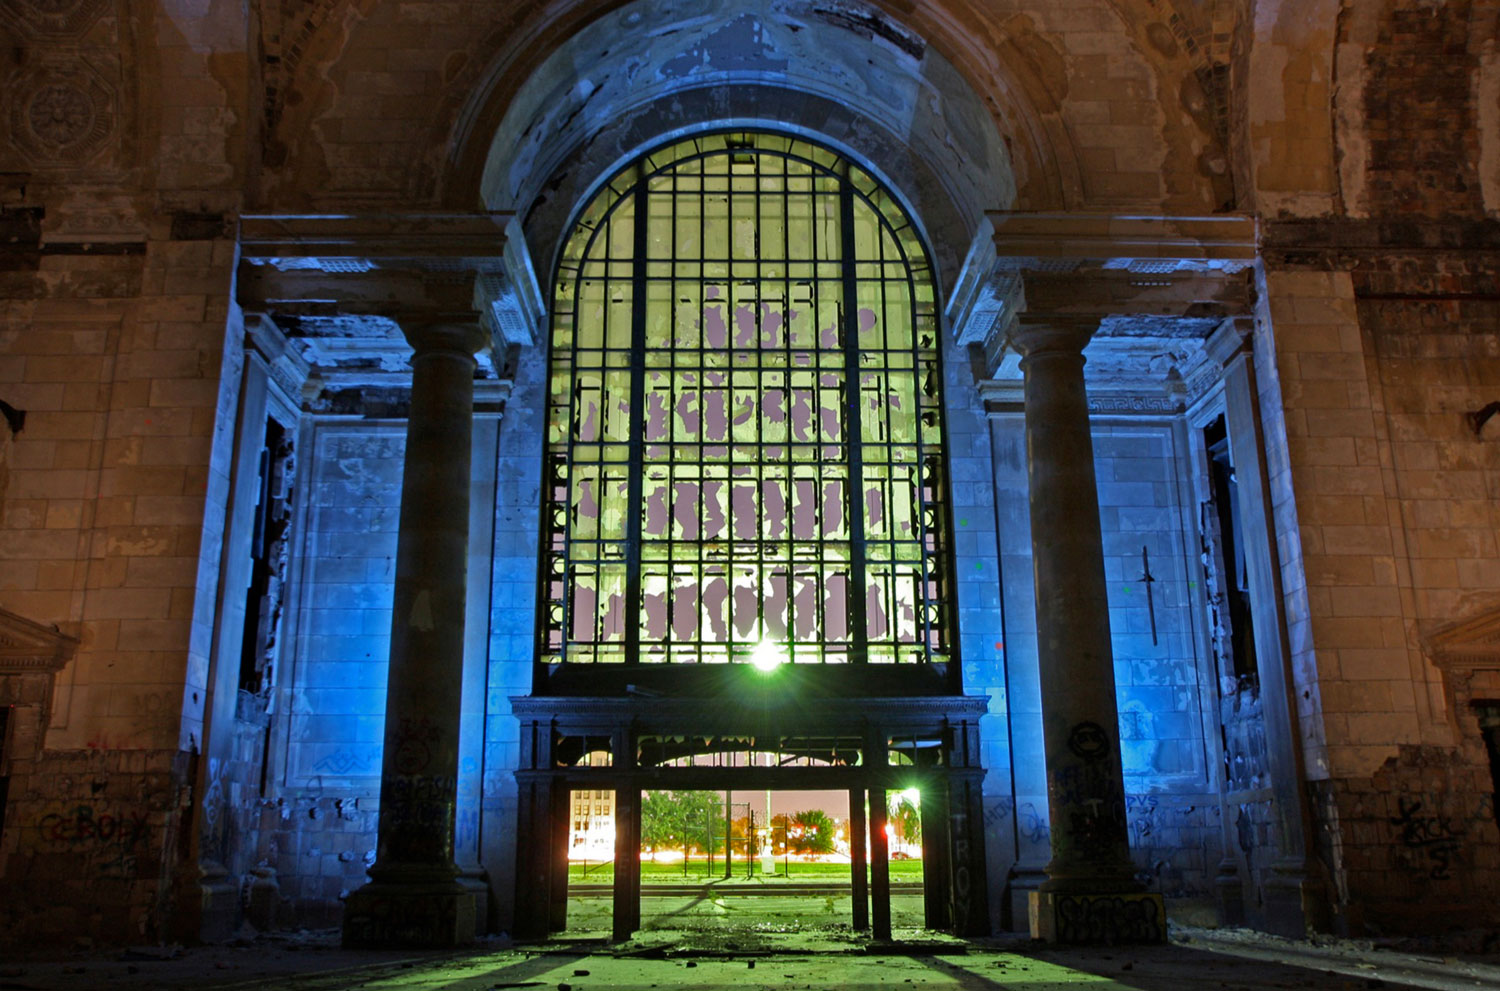 Michigan Central Station - Detroit, Michigan - The Flash Nites